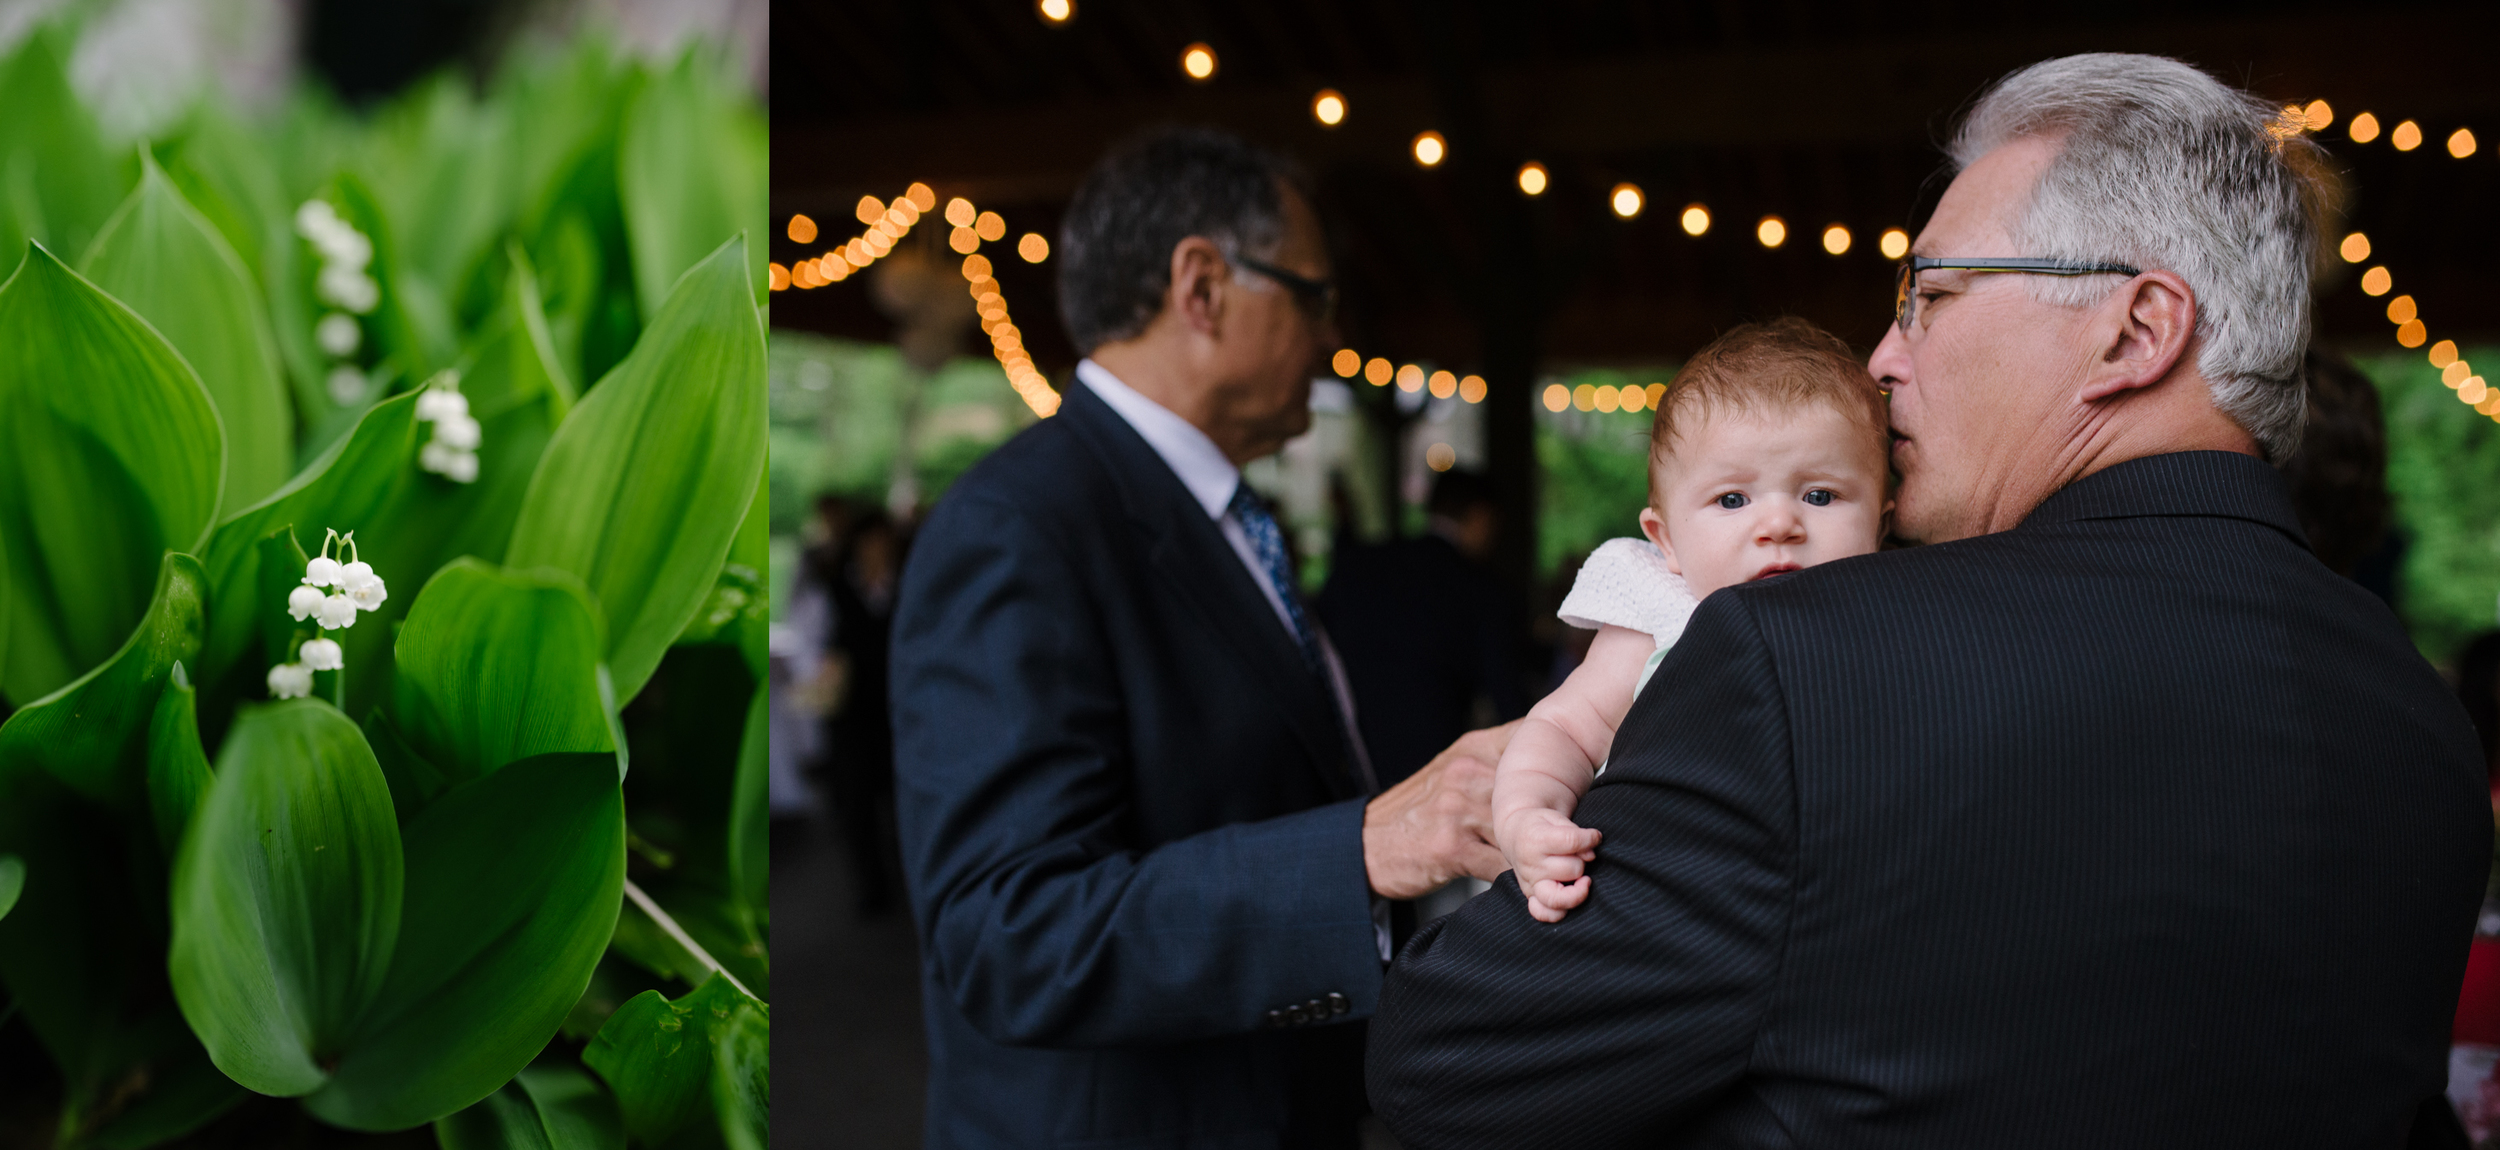 succop conservancy wedding 2.jpg